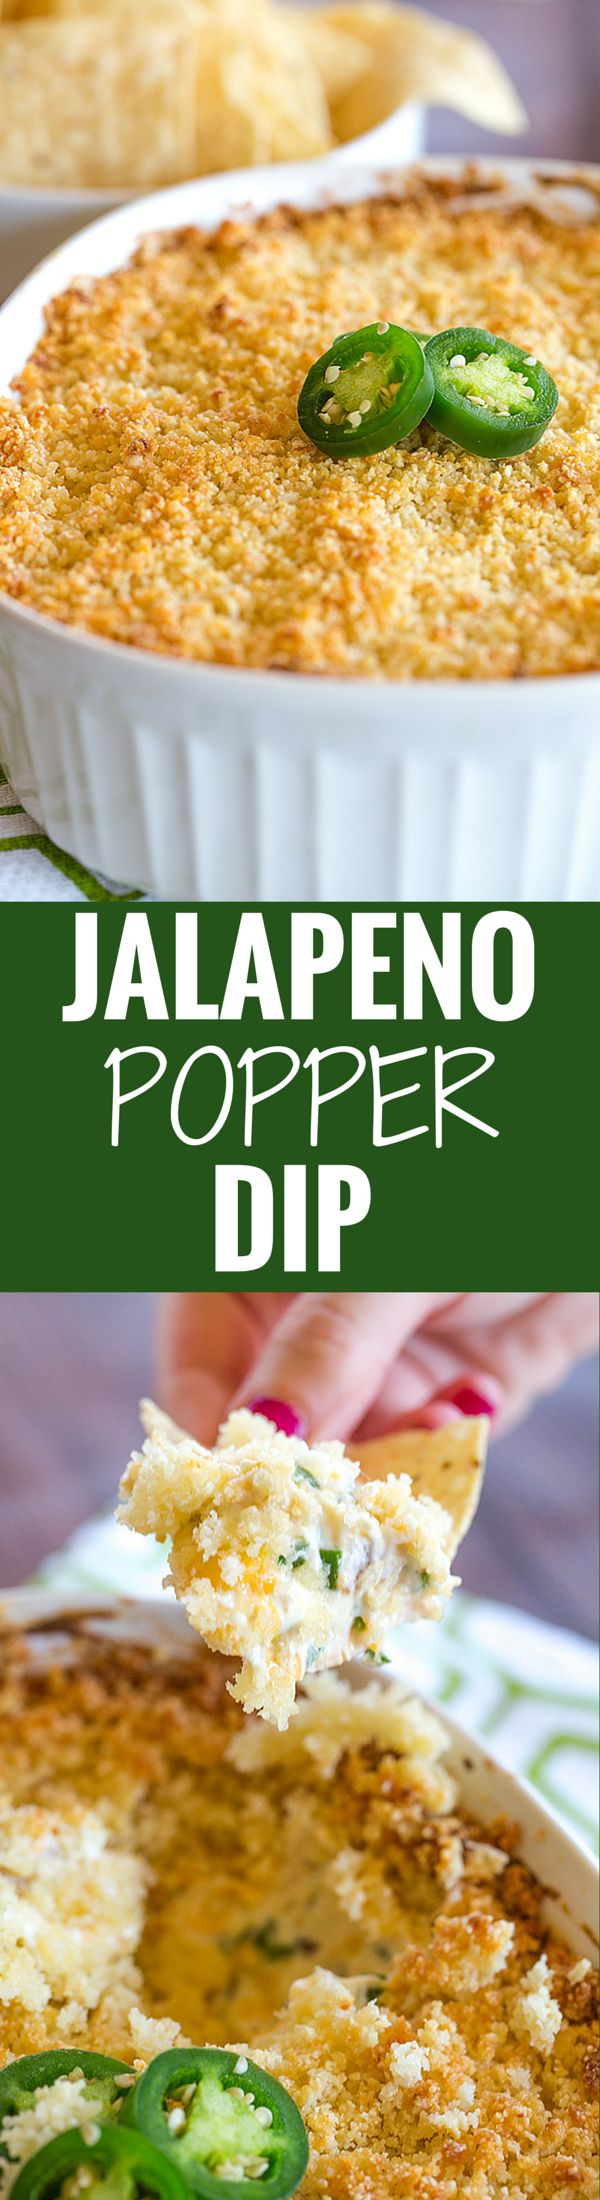 Jalapeno Popper Dip is creamy, cheesy and has just the perfect amount of kick. Great appetizer for your next party or watching the big game!